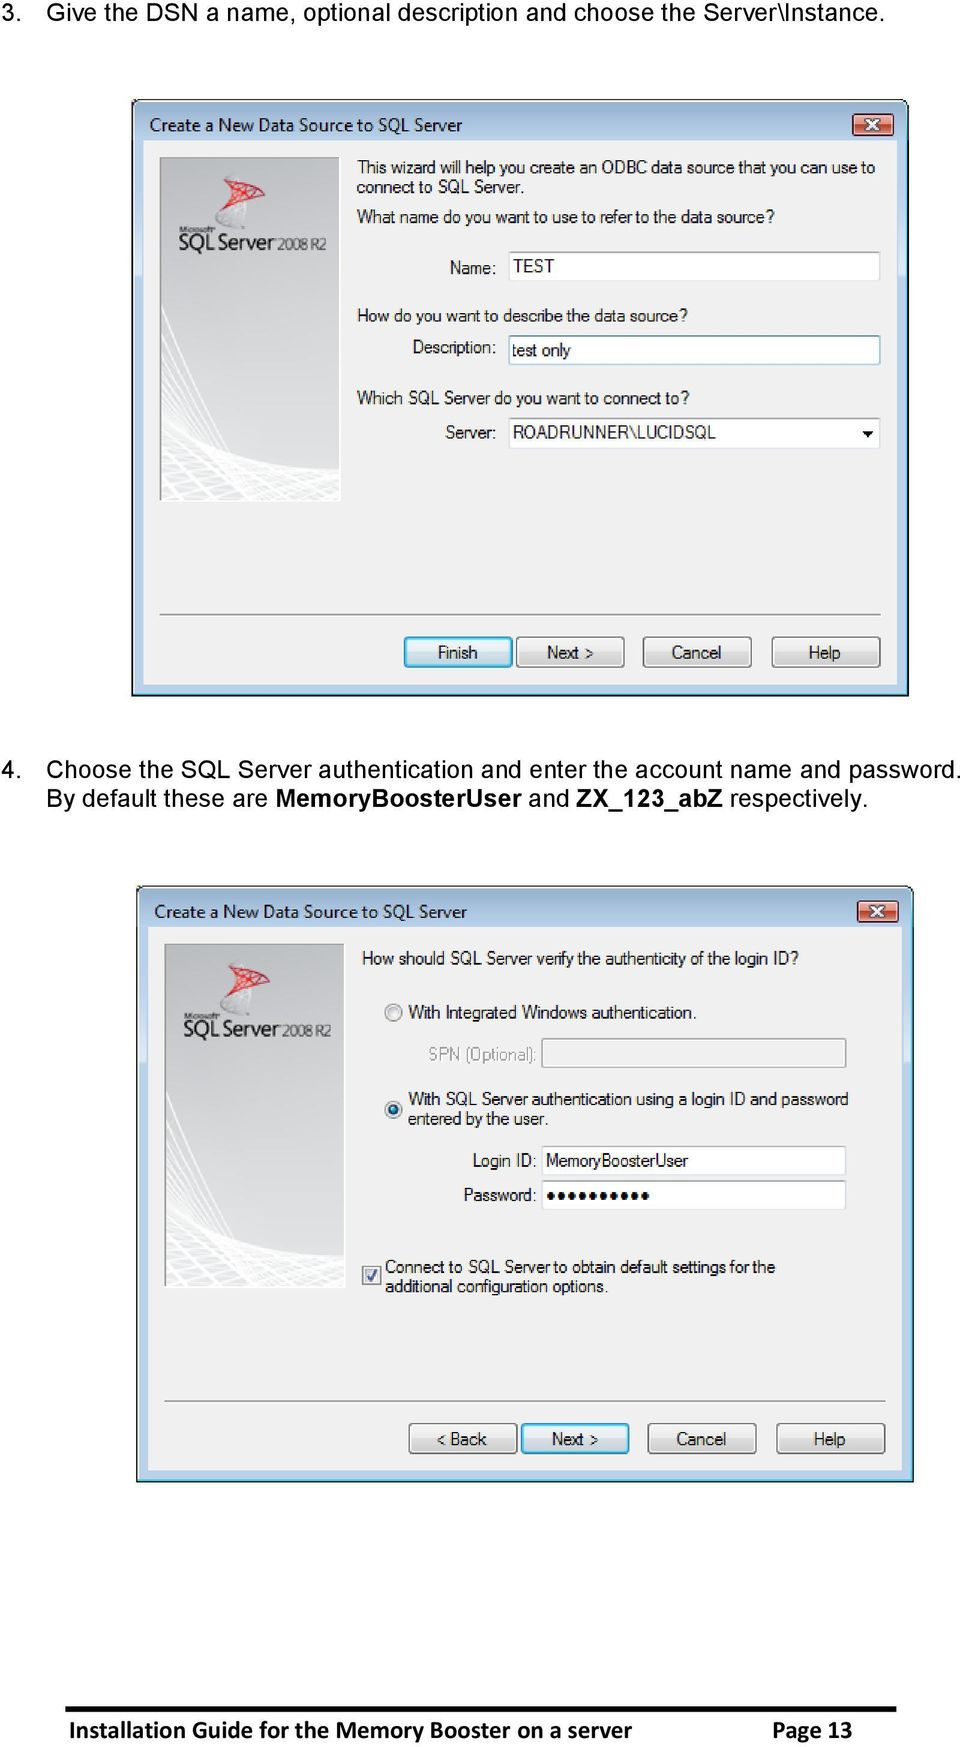 Choose the SQL Server authentication and enter the account name and